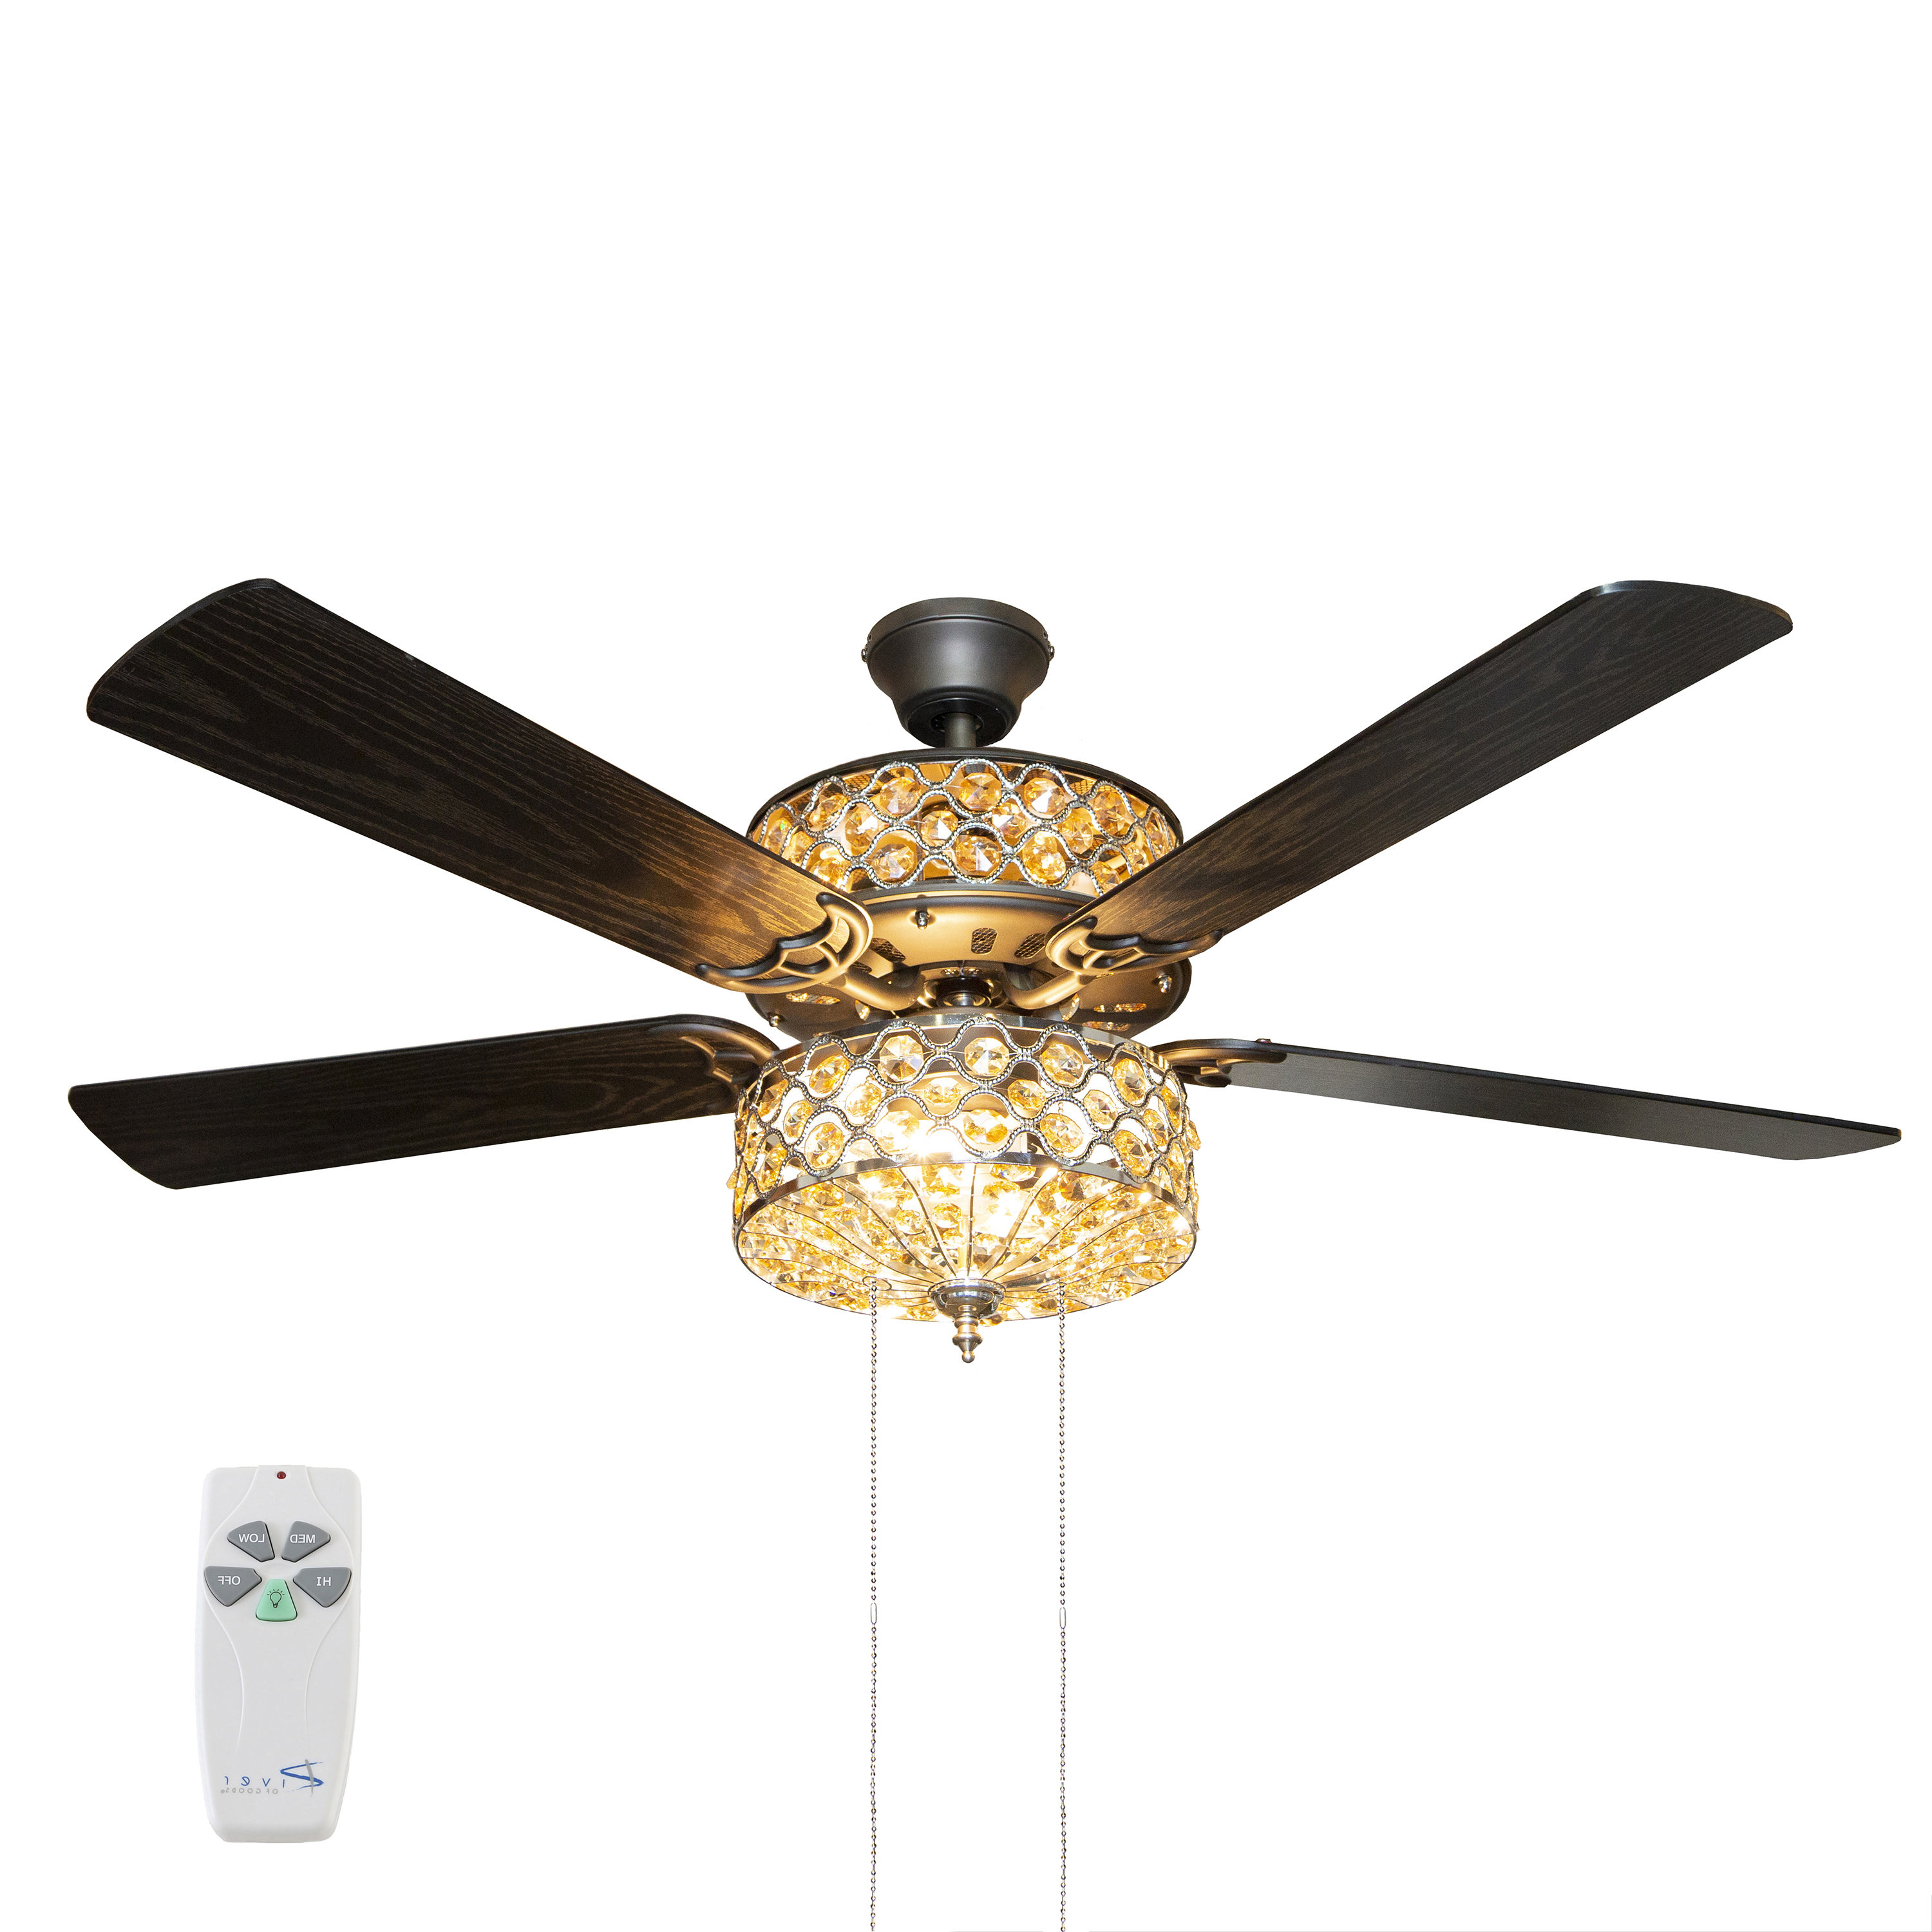 "Norah 5 Blade Ceiling Fans With Latest 52"" Irven 5 Blade Ceiling Fan With Remote, Light Kit Included (View 12 of 20)"